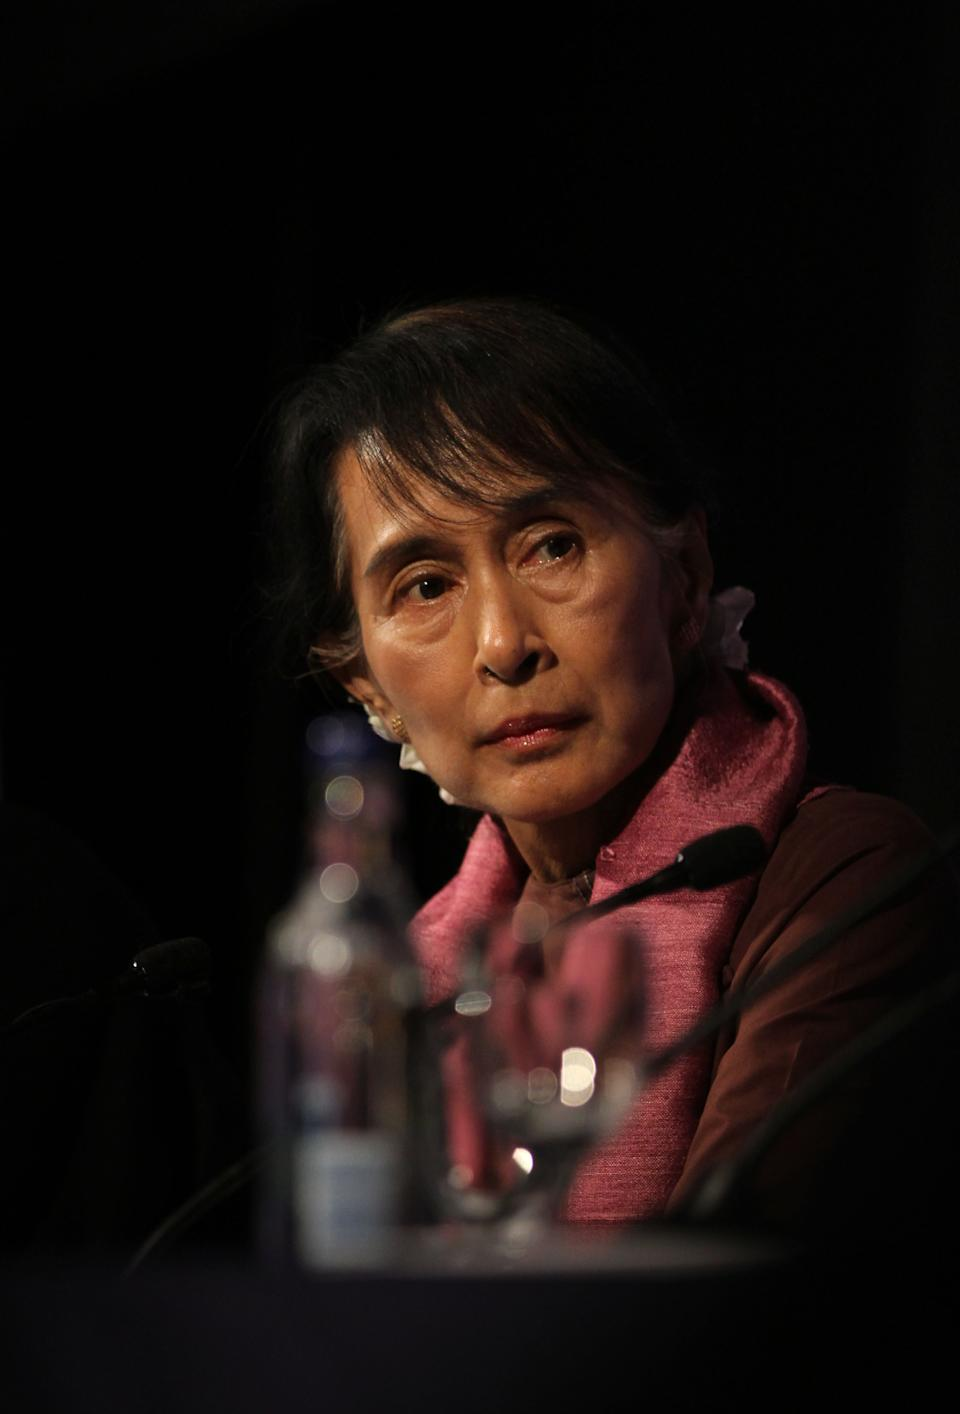 Myanmar political leader Aung San Suu Kyi takes part in a round table at The London School of Economics and Political Science during the first public event of her UK  visit in London Tuesday June, 19, 2012. (AP Photo/Elizabeth Dalziel)